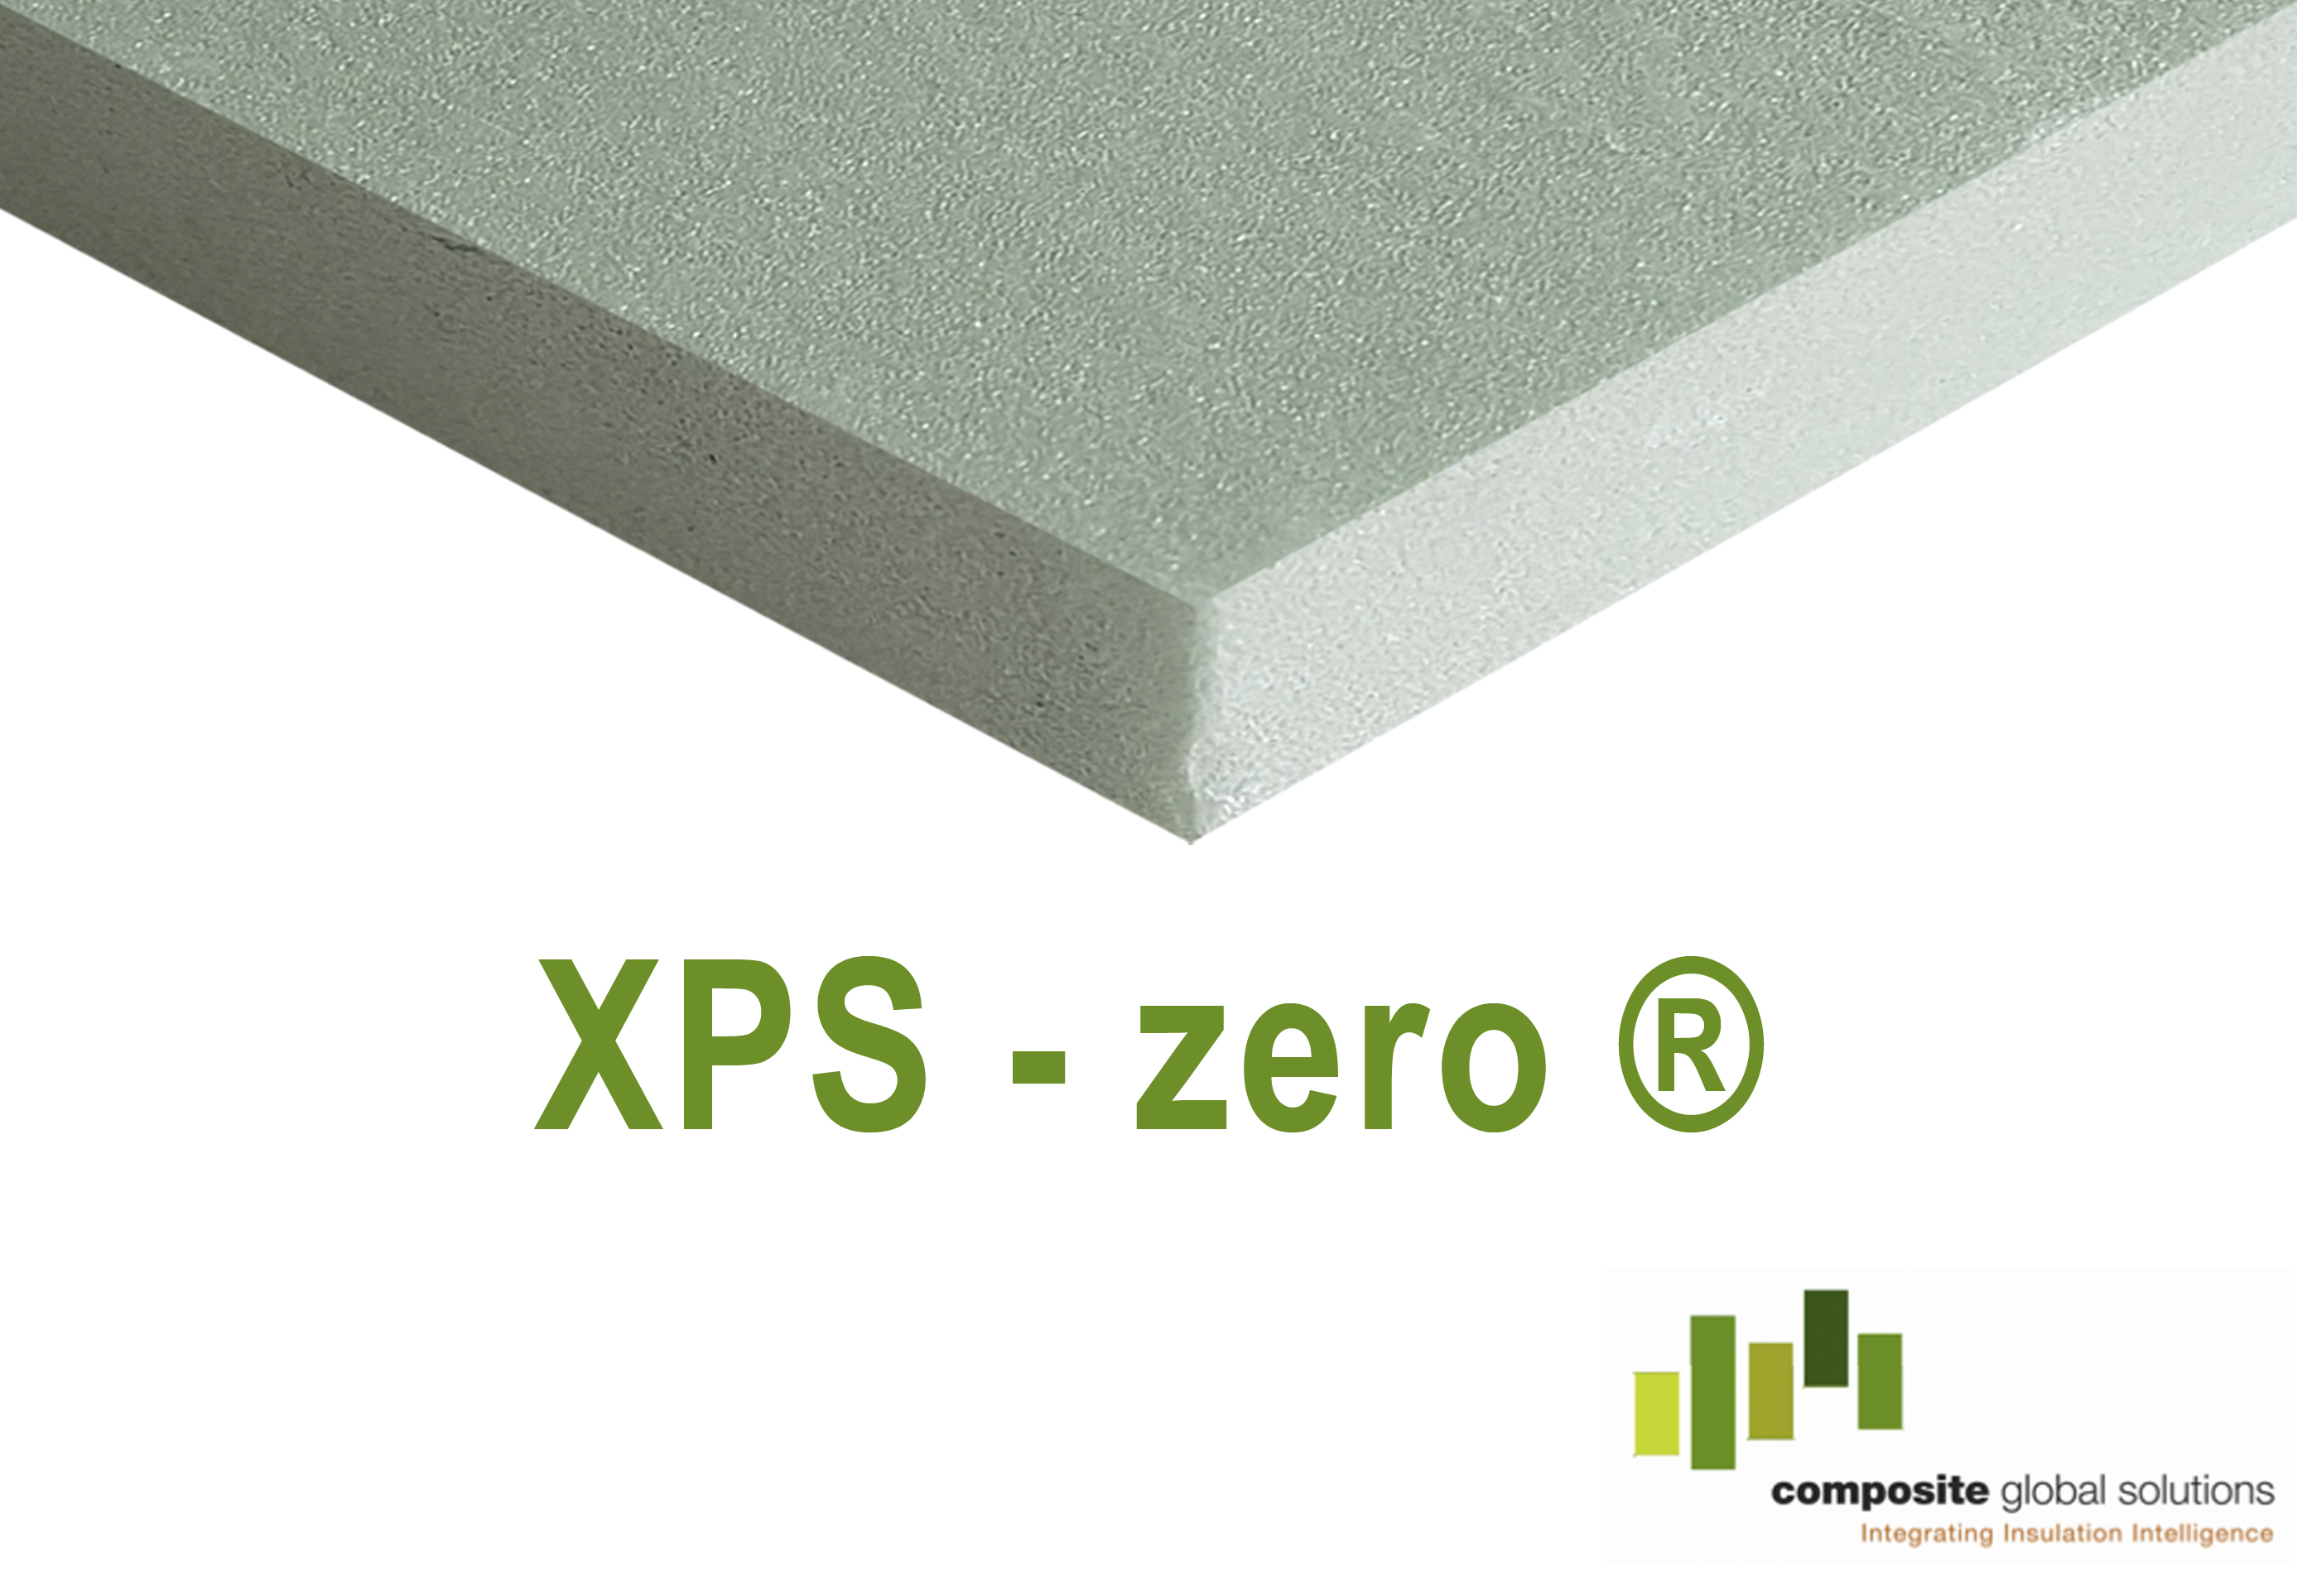 Australian Made Extruded Polystyrene (XPS